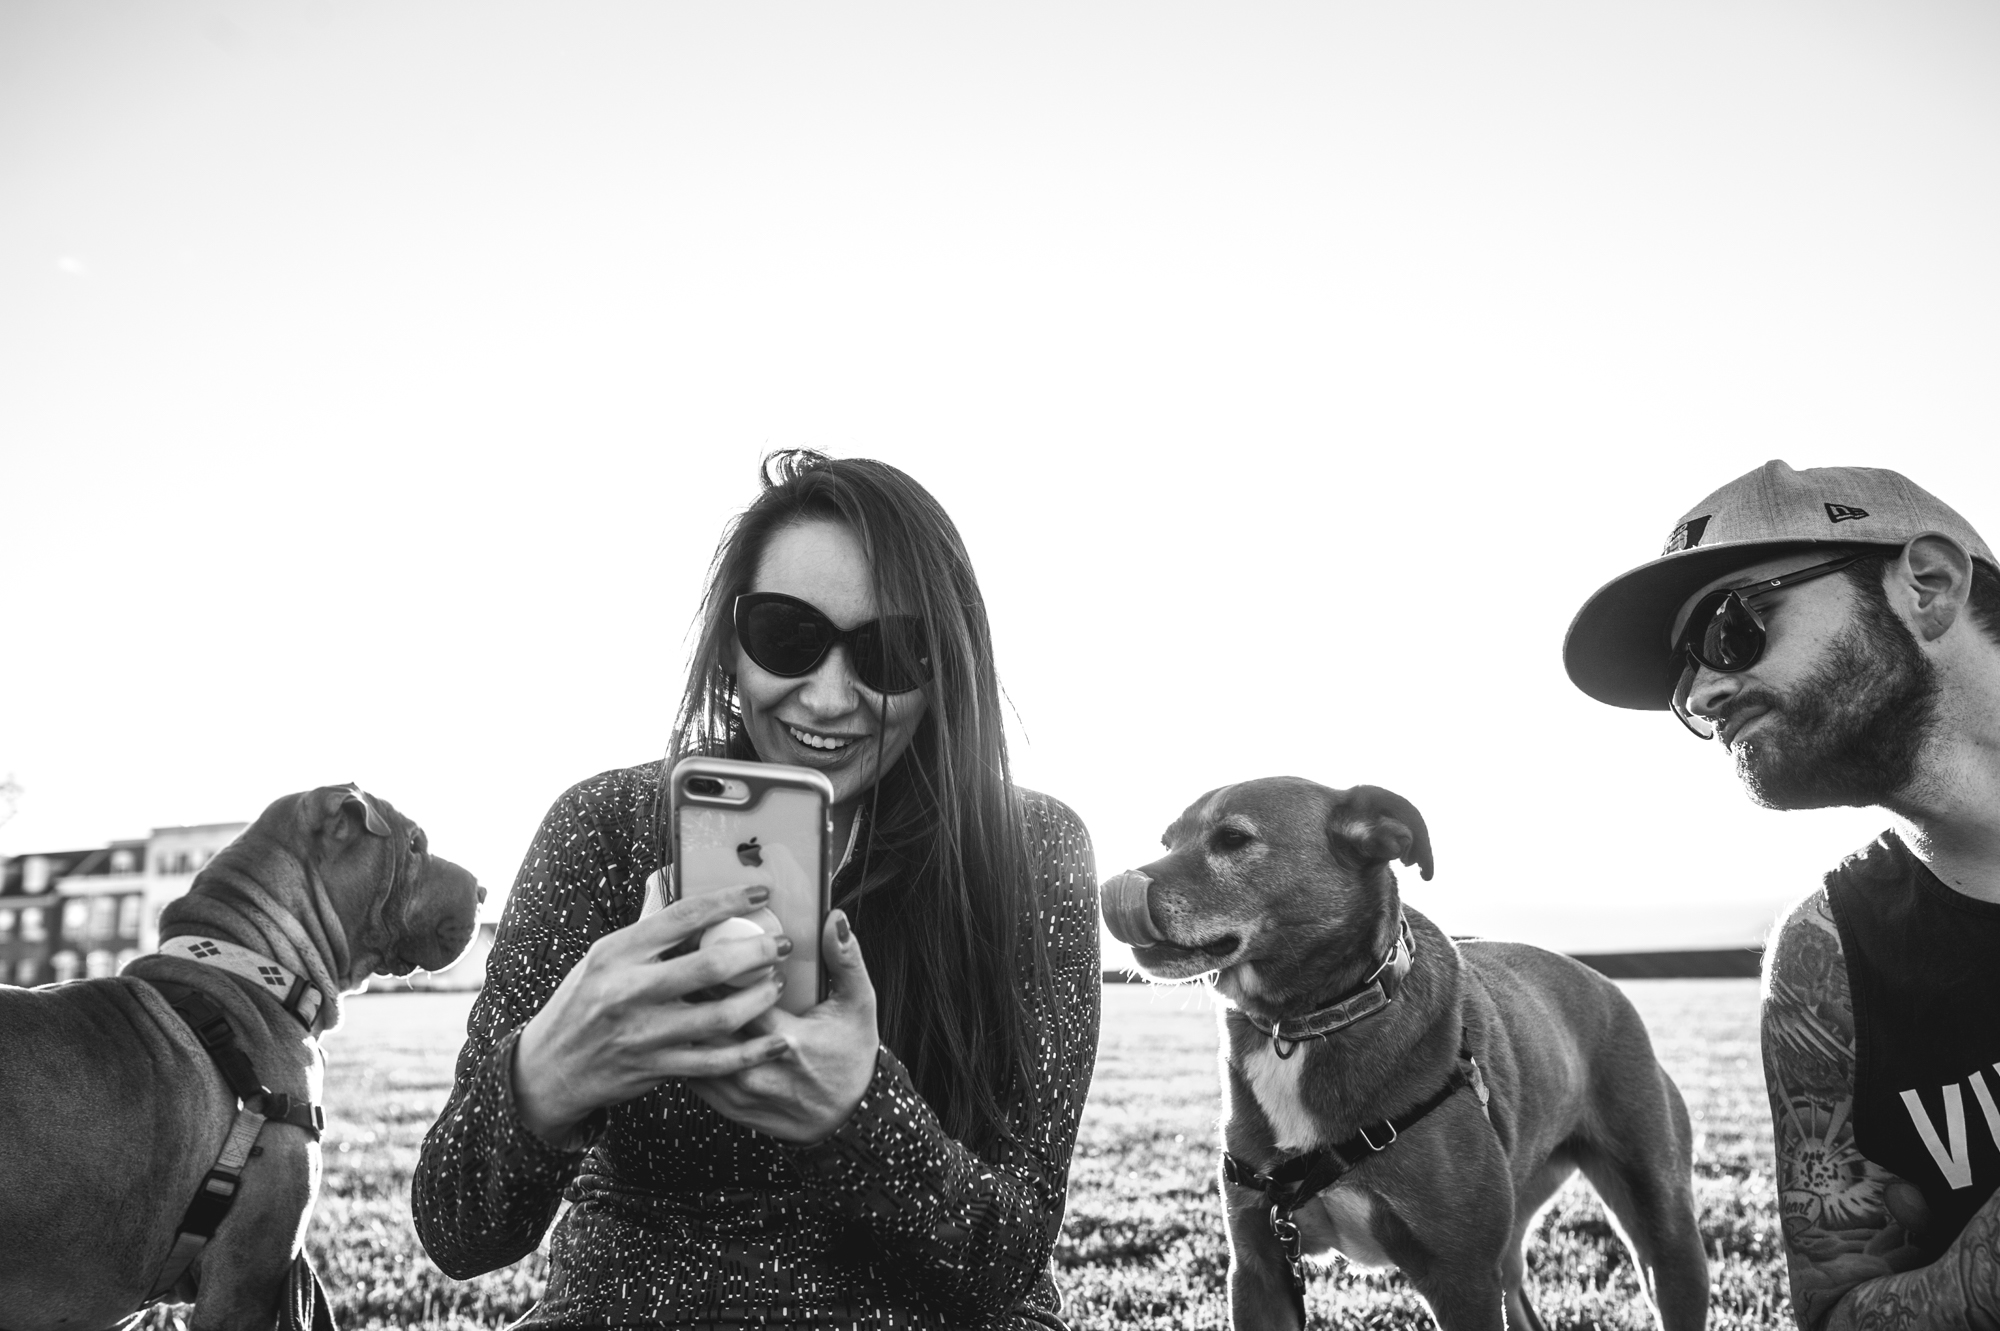 A woman looks at her phone while her dog, licking its face, looks on and her husband leans over to see it, black and white, Stapleton, CO